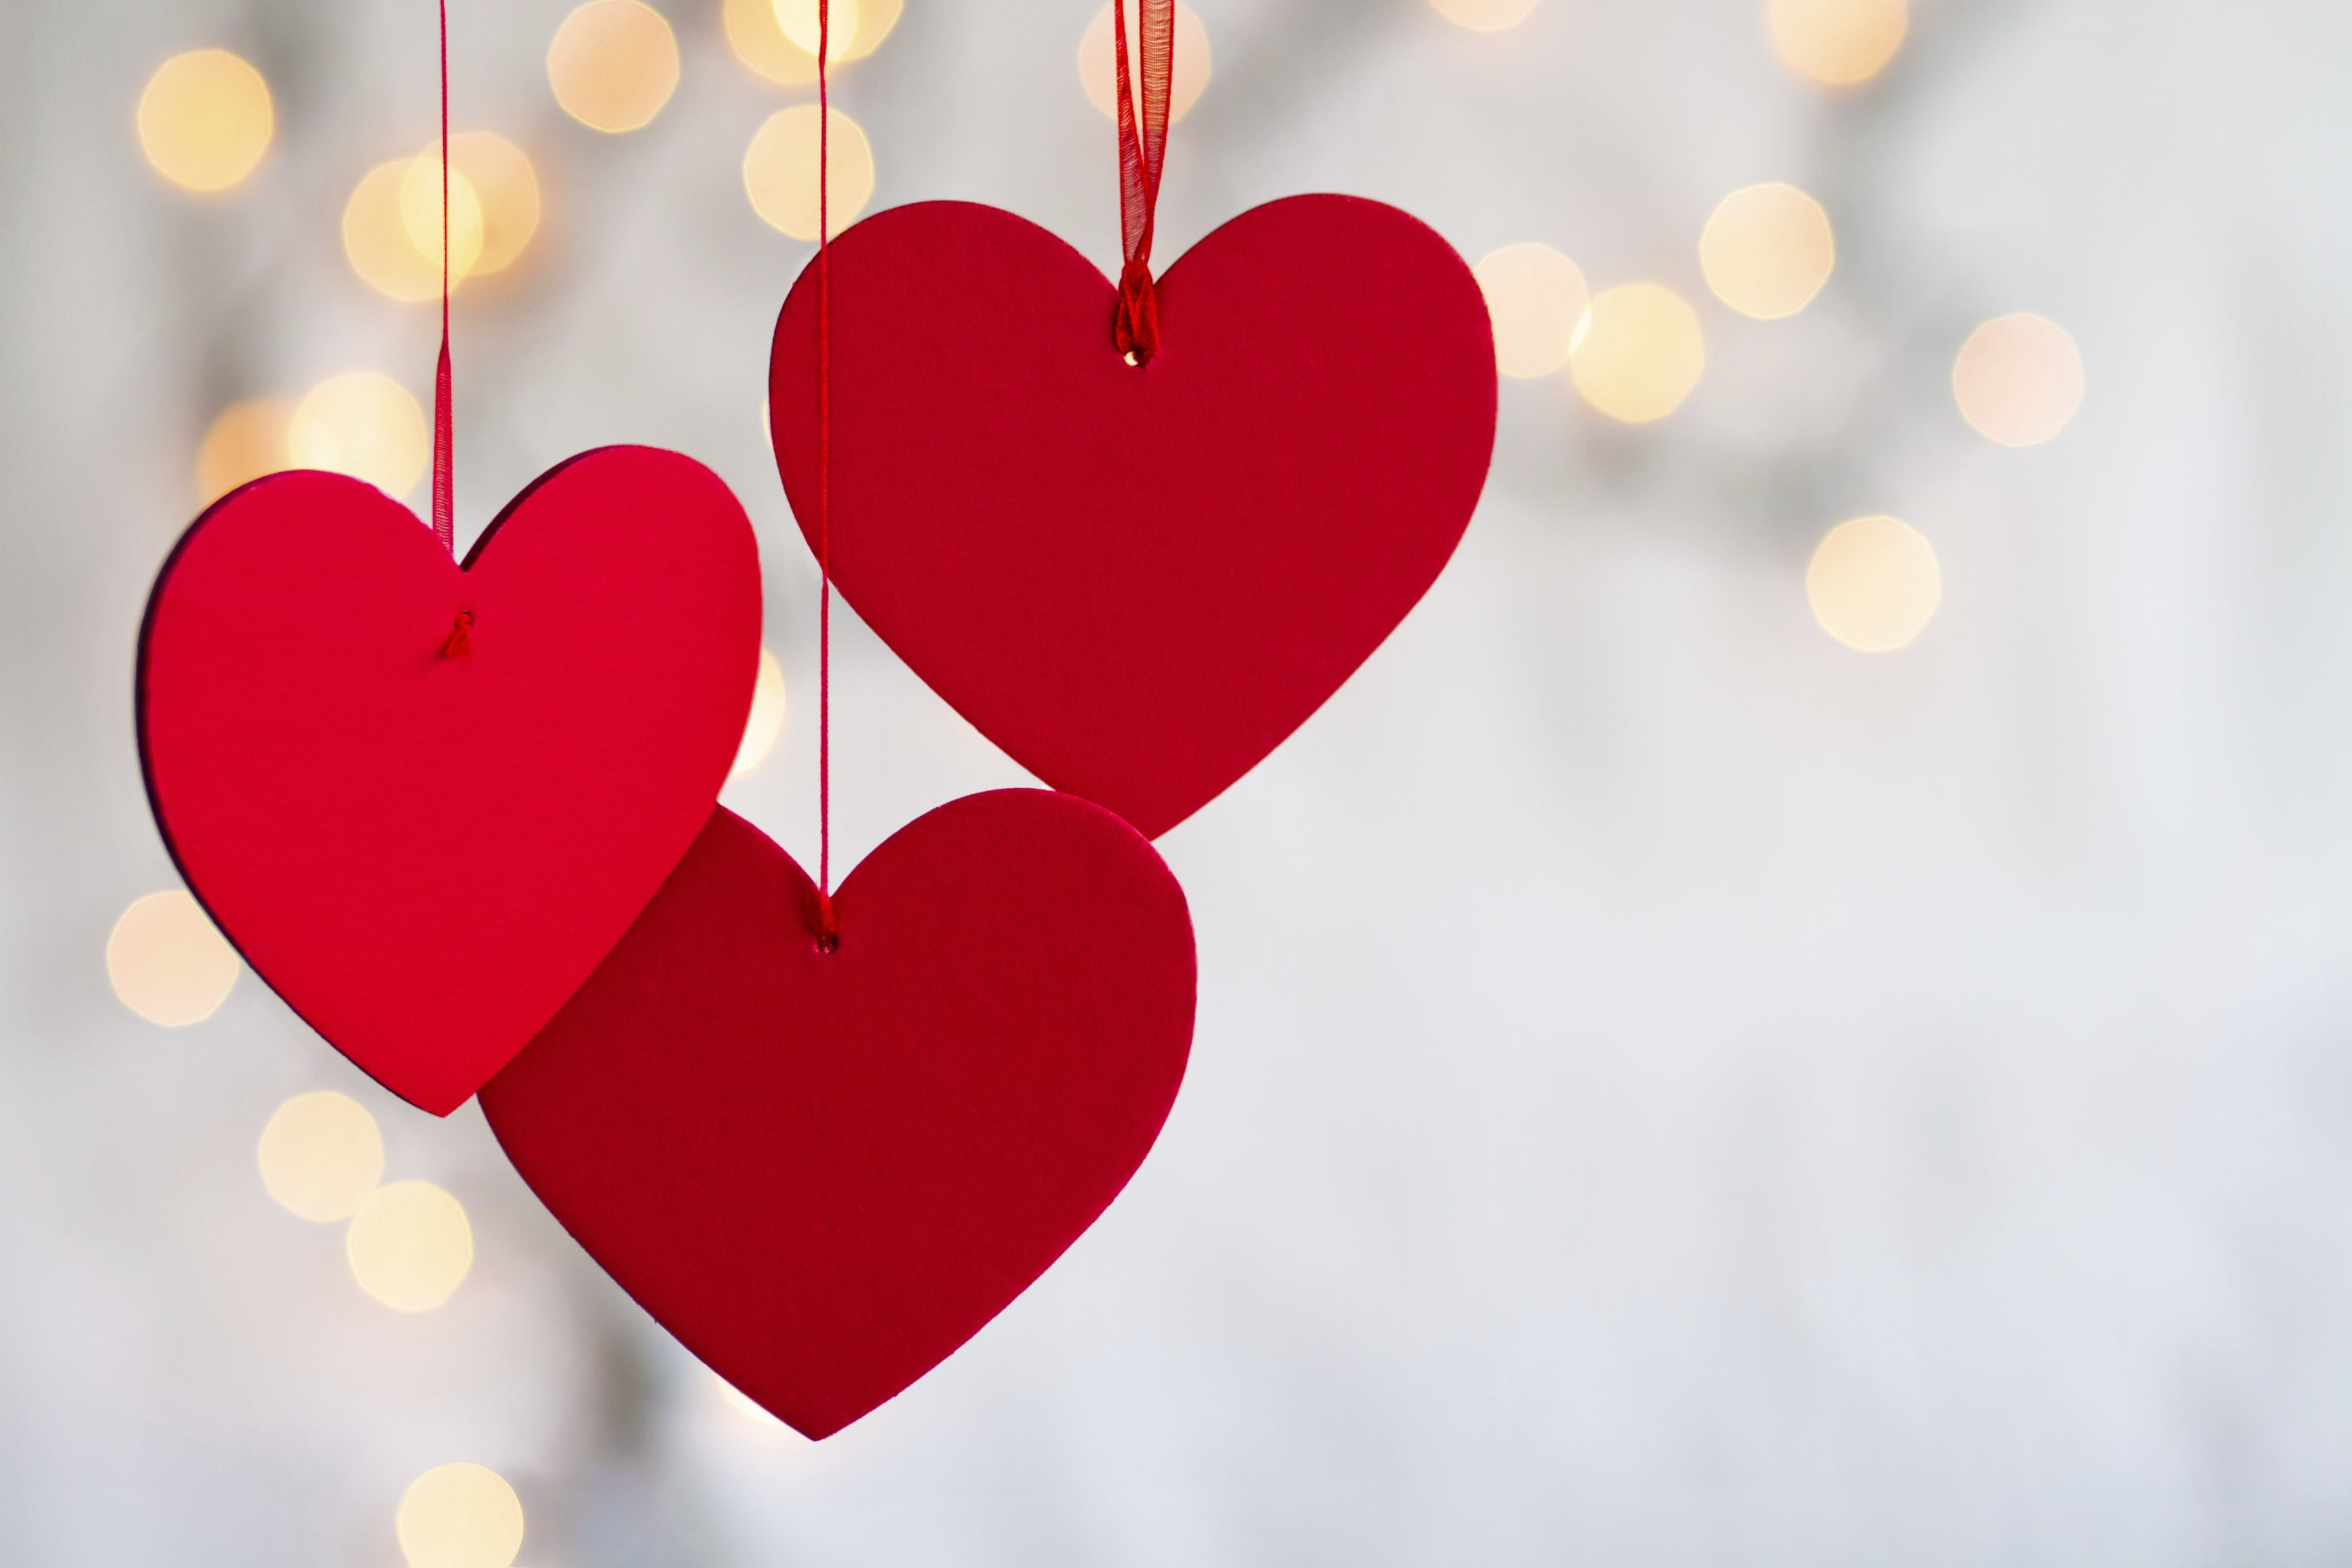 Valentine S Day Cleric Tells Christians What To Do